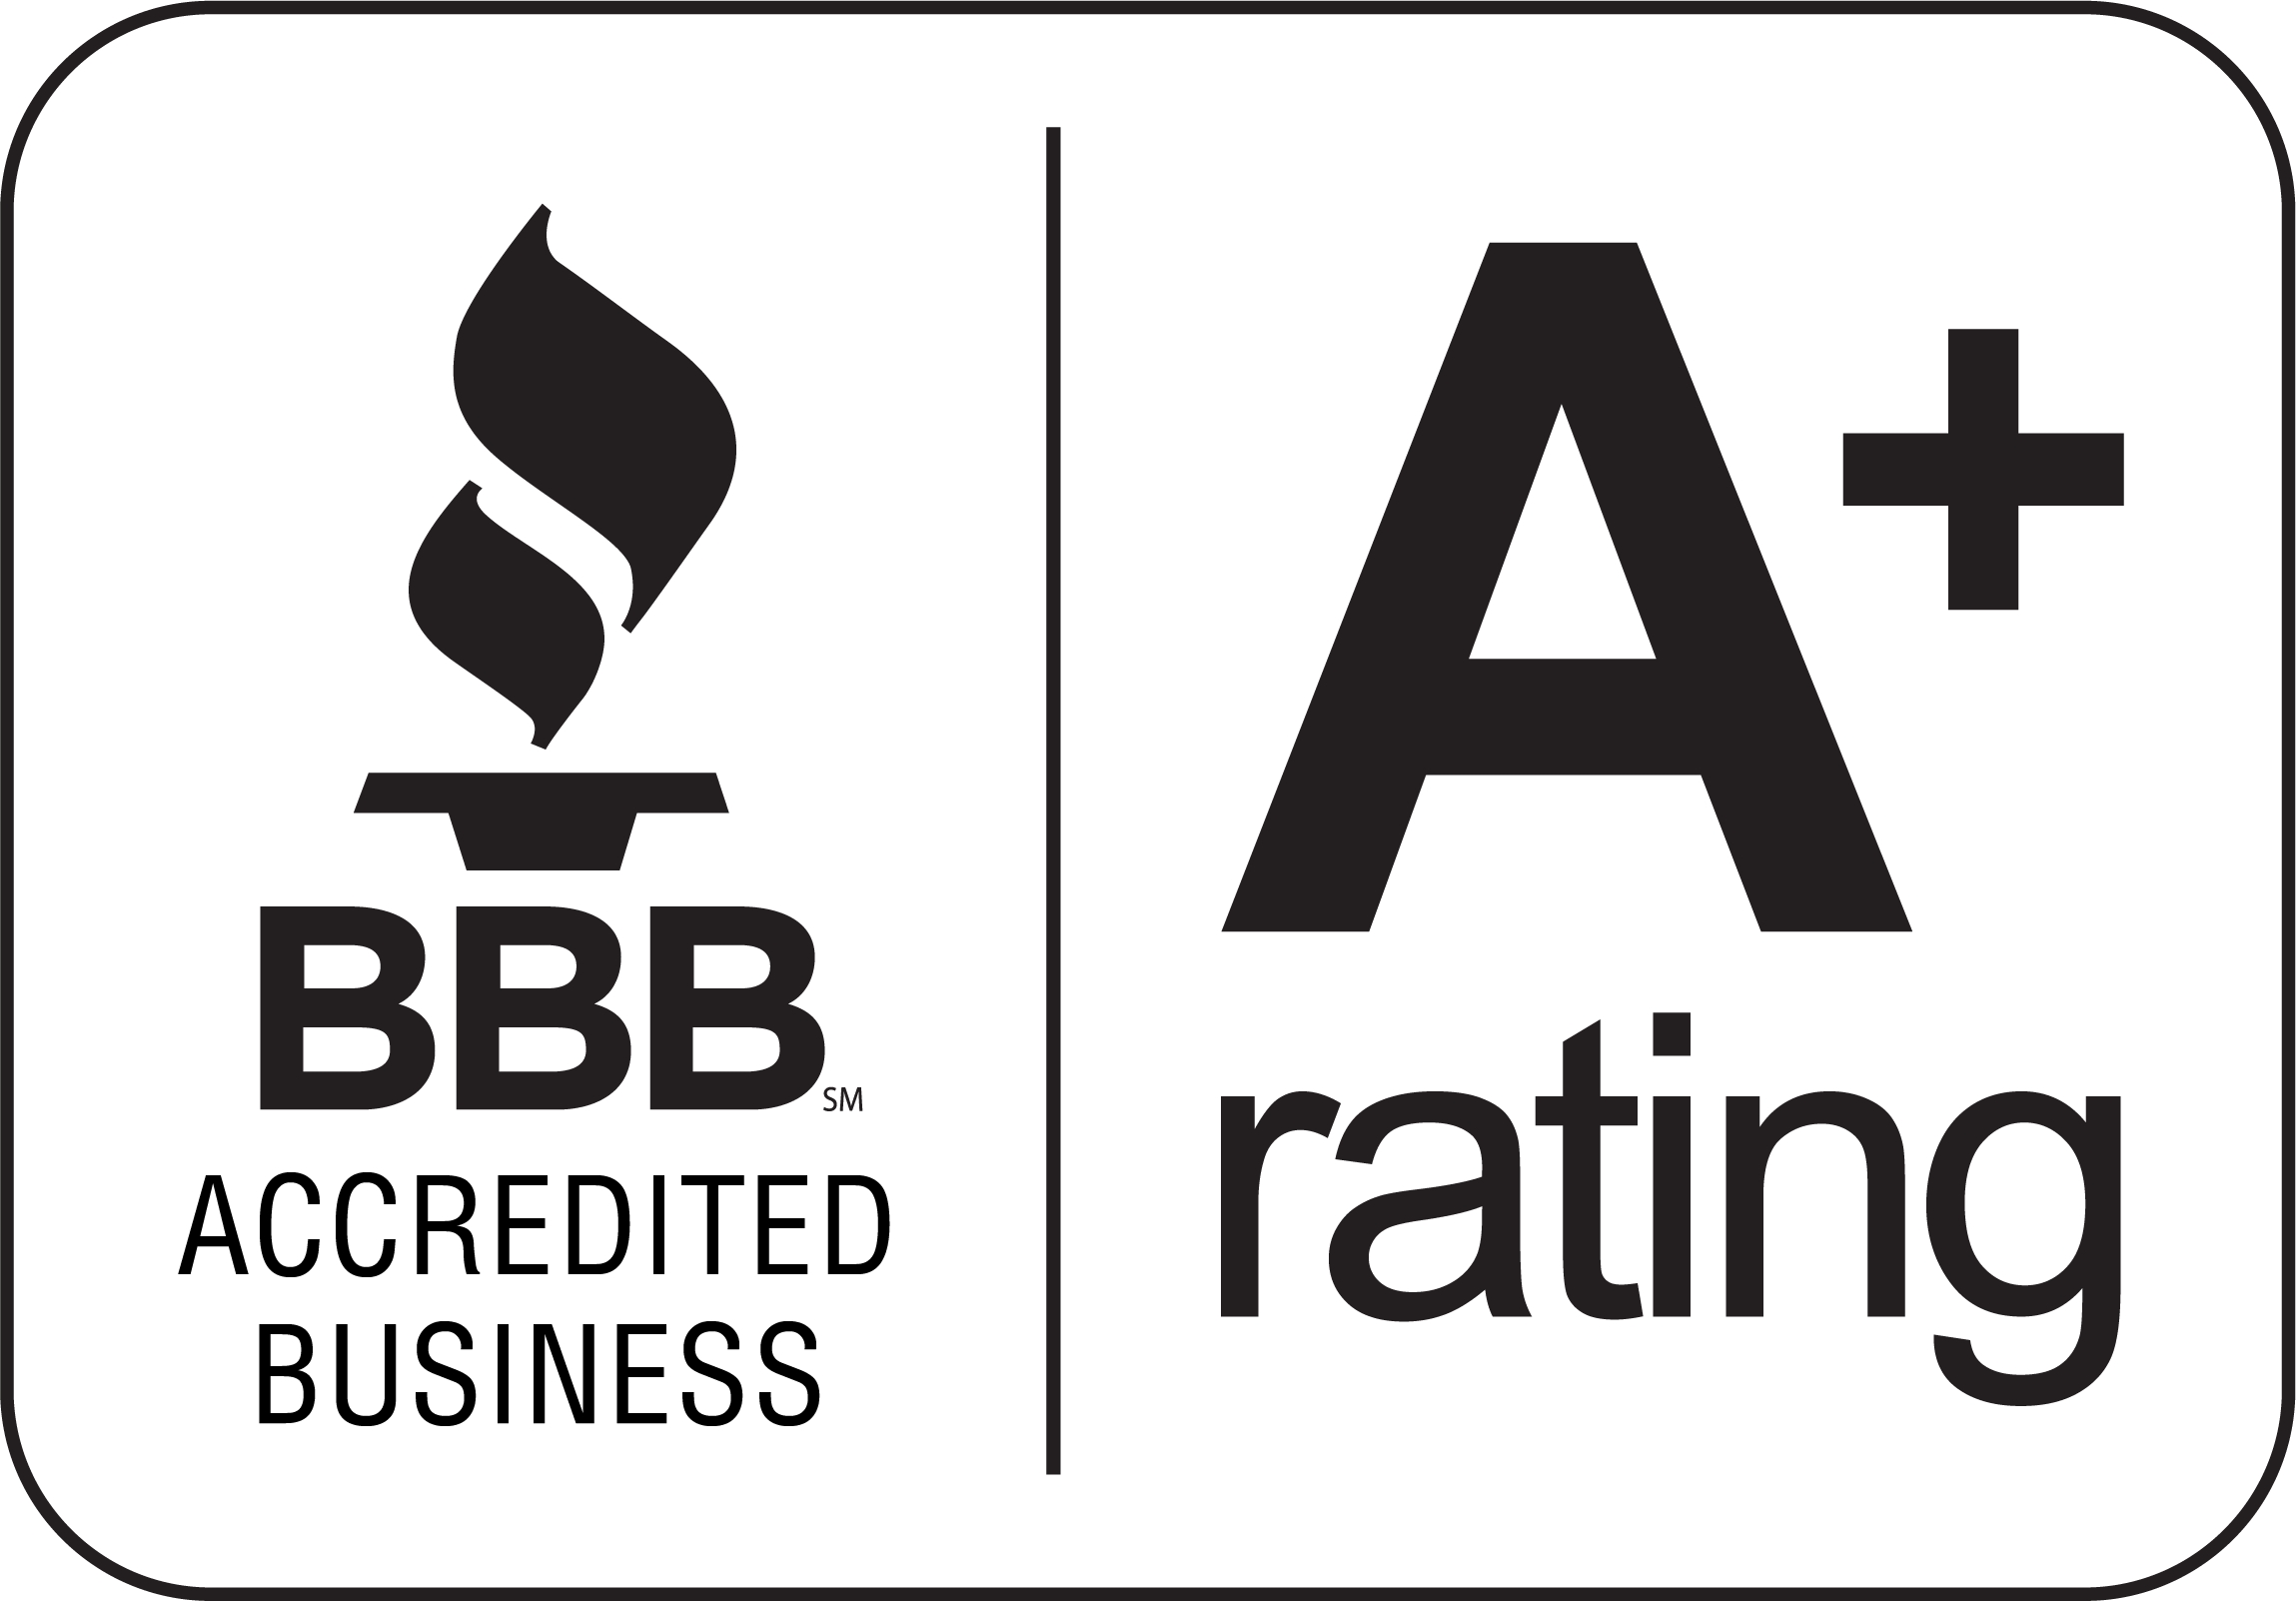 BBB A+ Rating Image - WC Painting & Associates